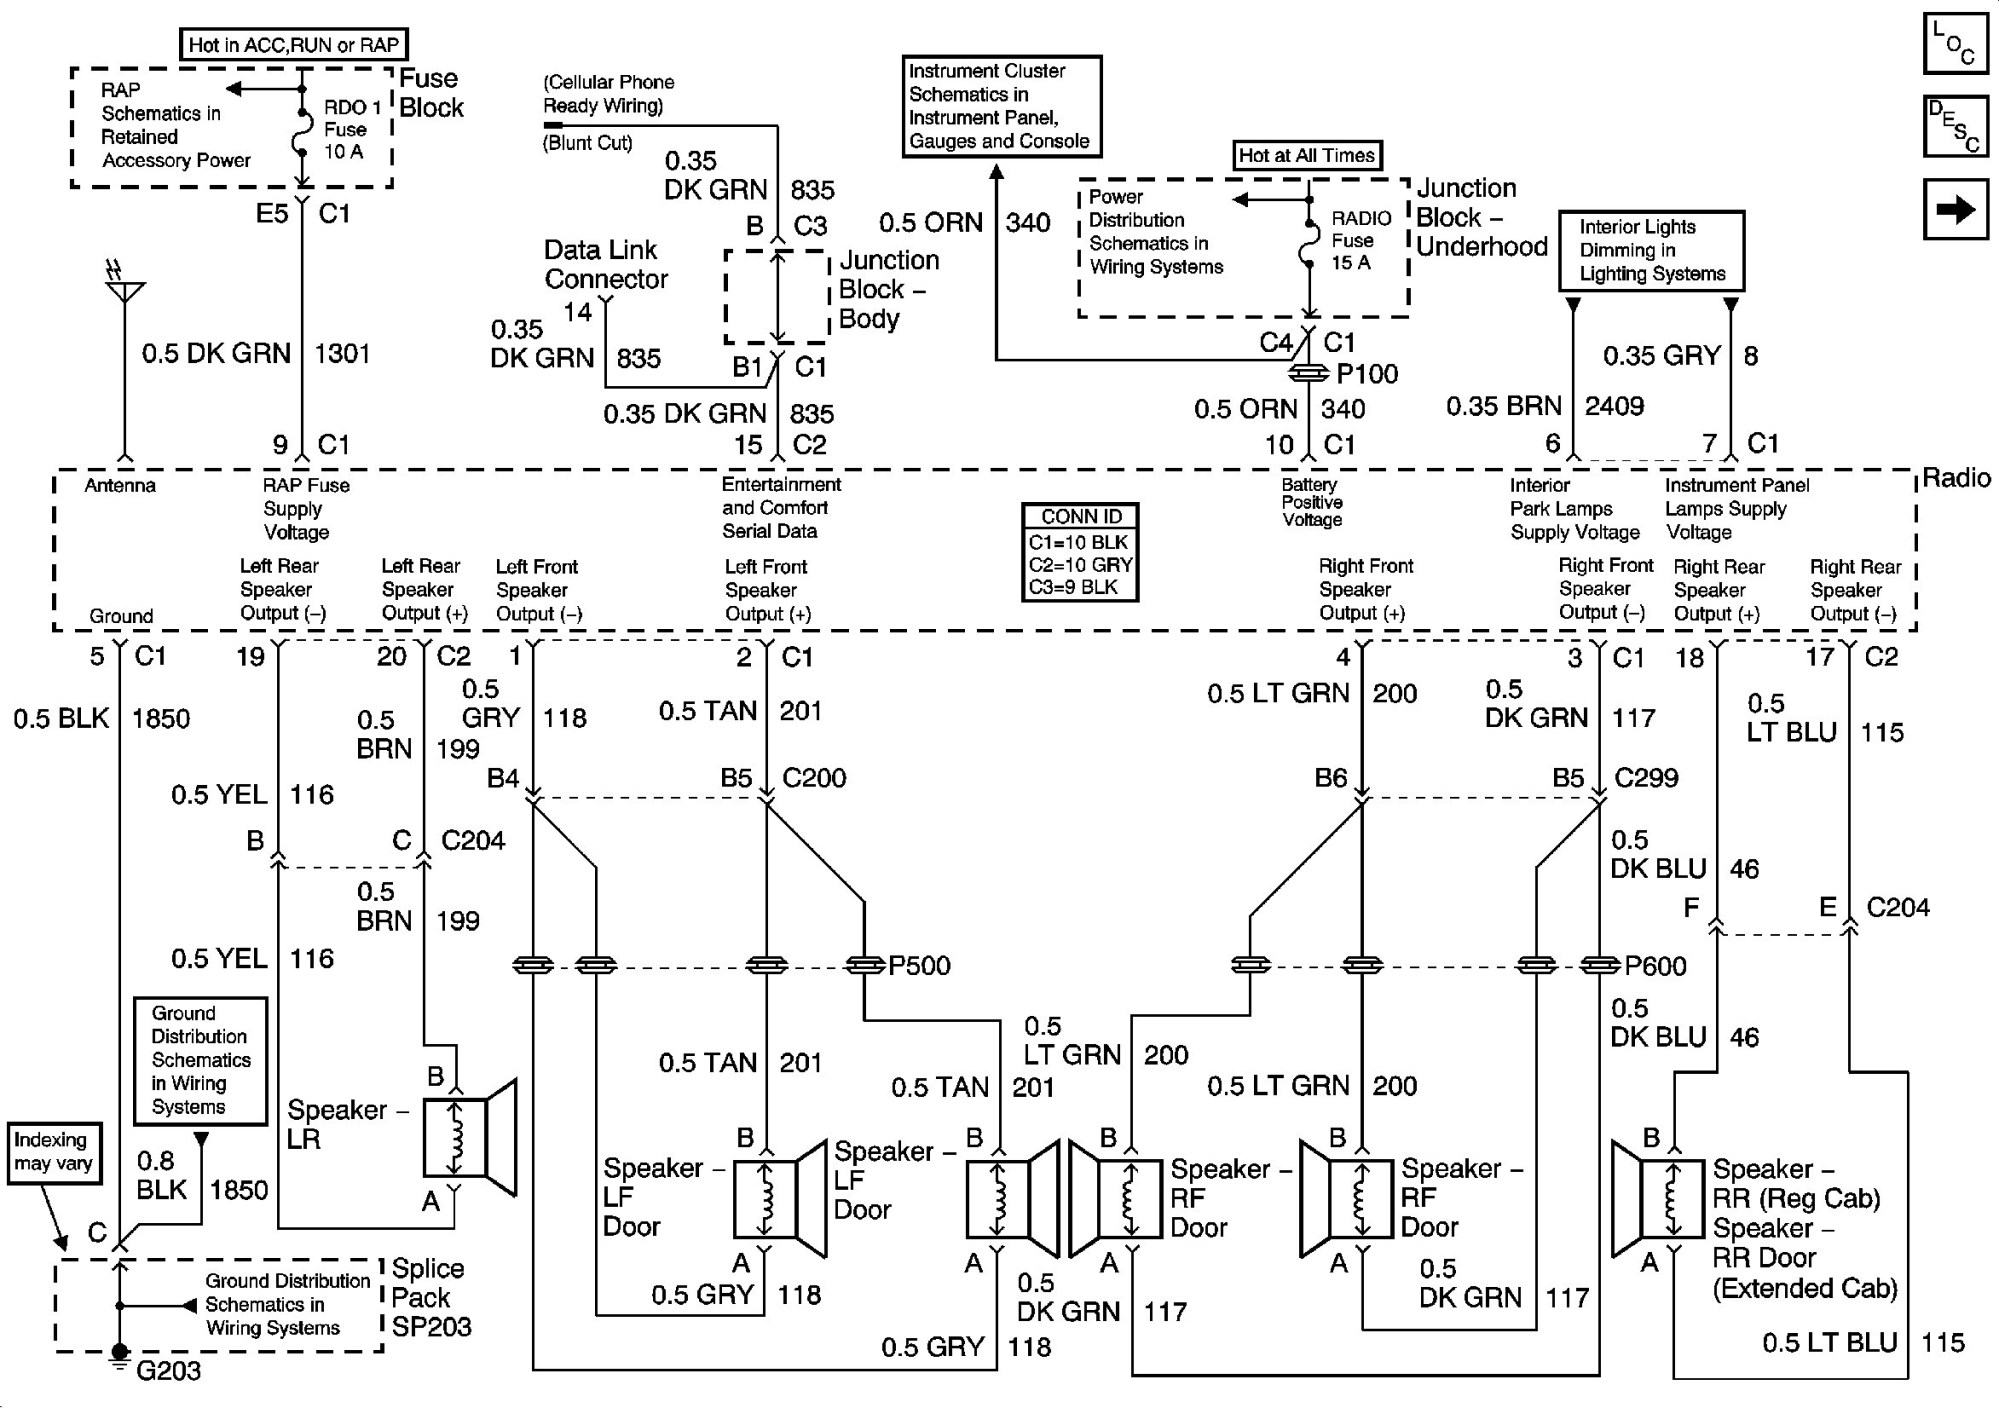 hight resolution of 2007 chevy tahoe wiring schematics wiring diagrams konsult chevy tahoe wiring schematic 07 chevy tahoe wiring